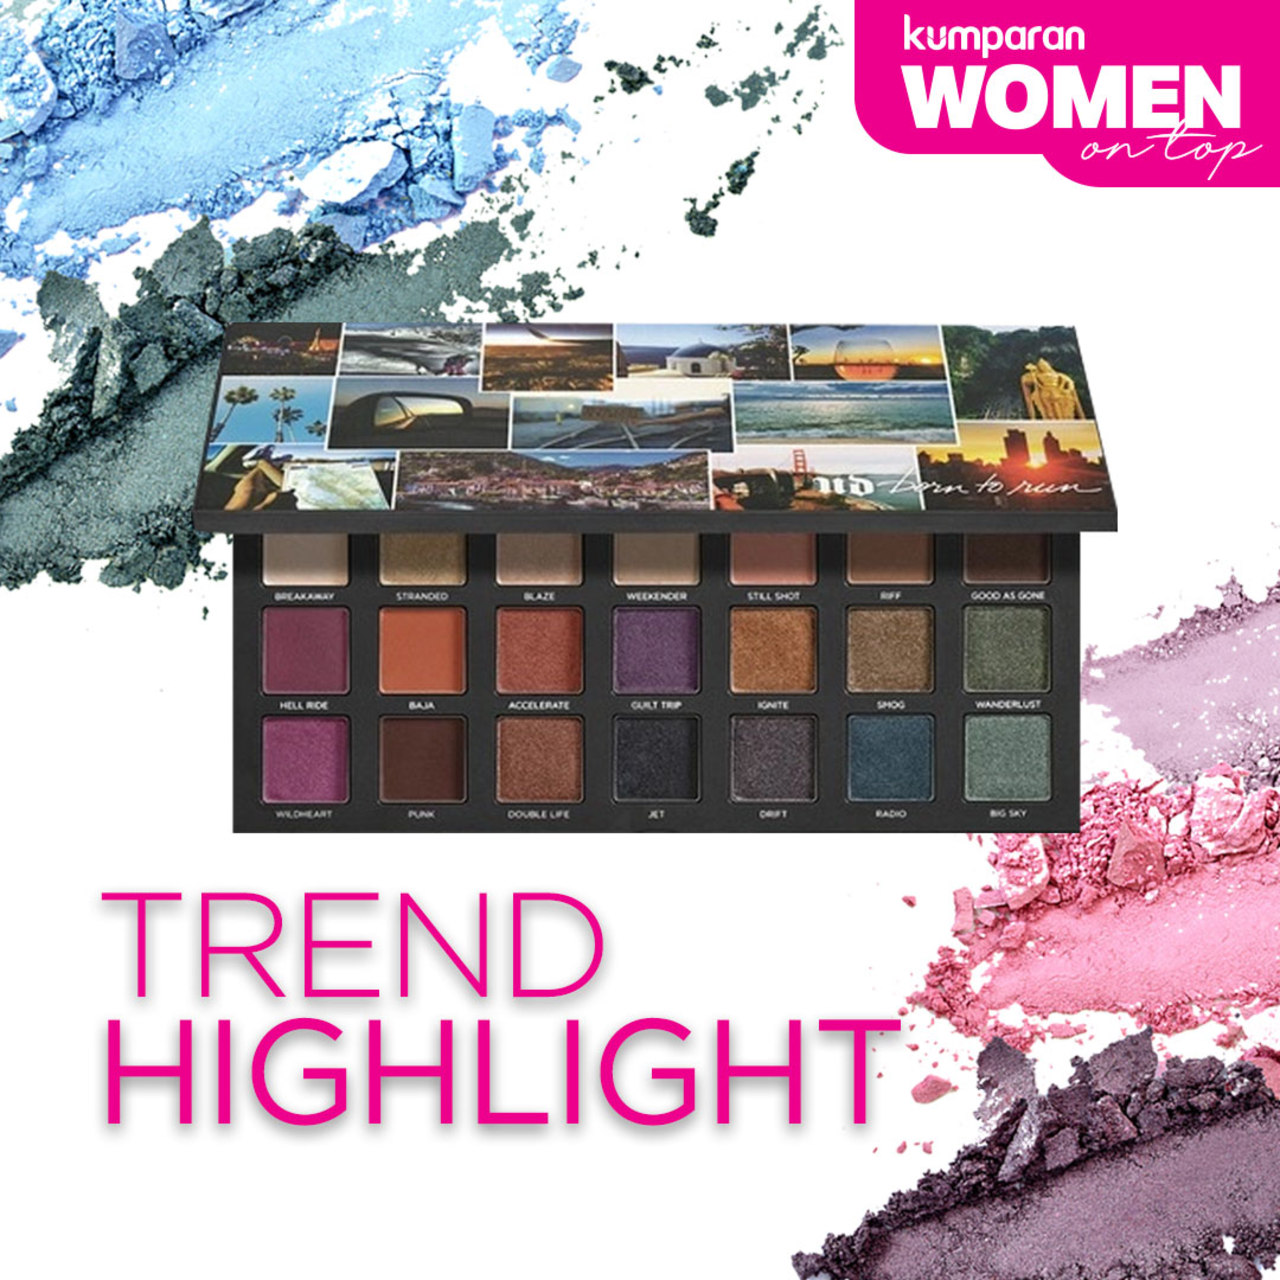 Women on Top - Trend Highlight Eyeshadow